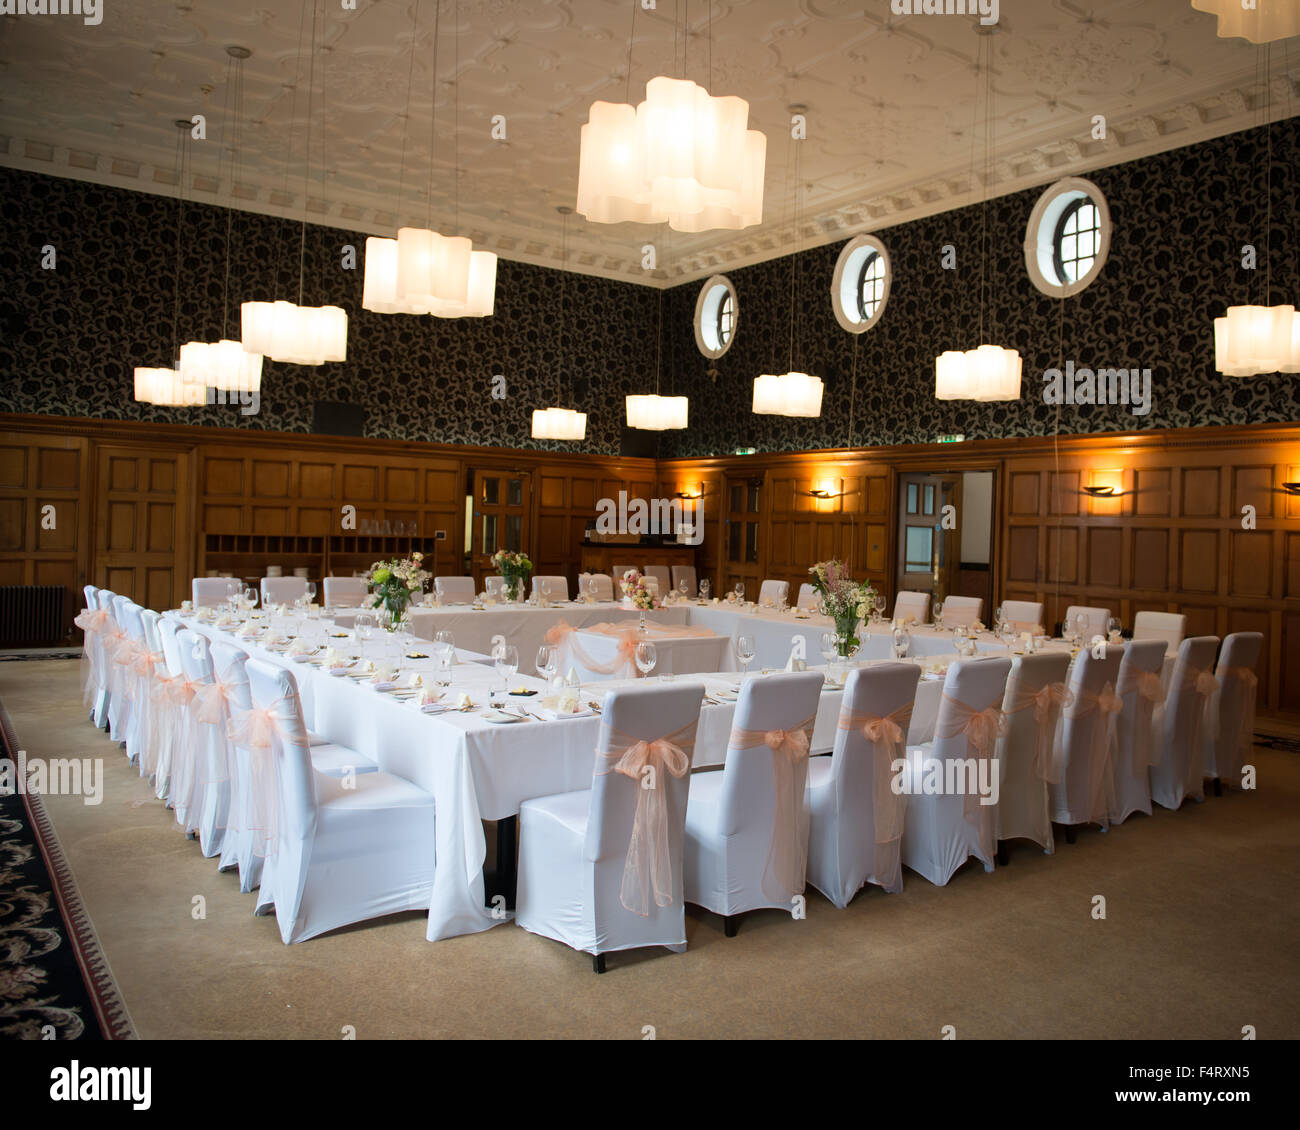 chair covers scotland babies r us rocking chairs and gliders wedding reception room table layout tables set in a square formation stock photo: 89036337 - alamy